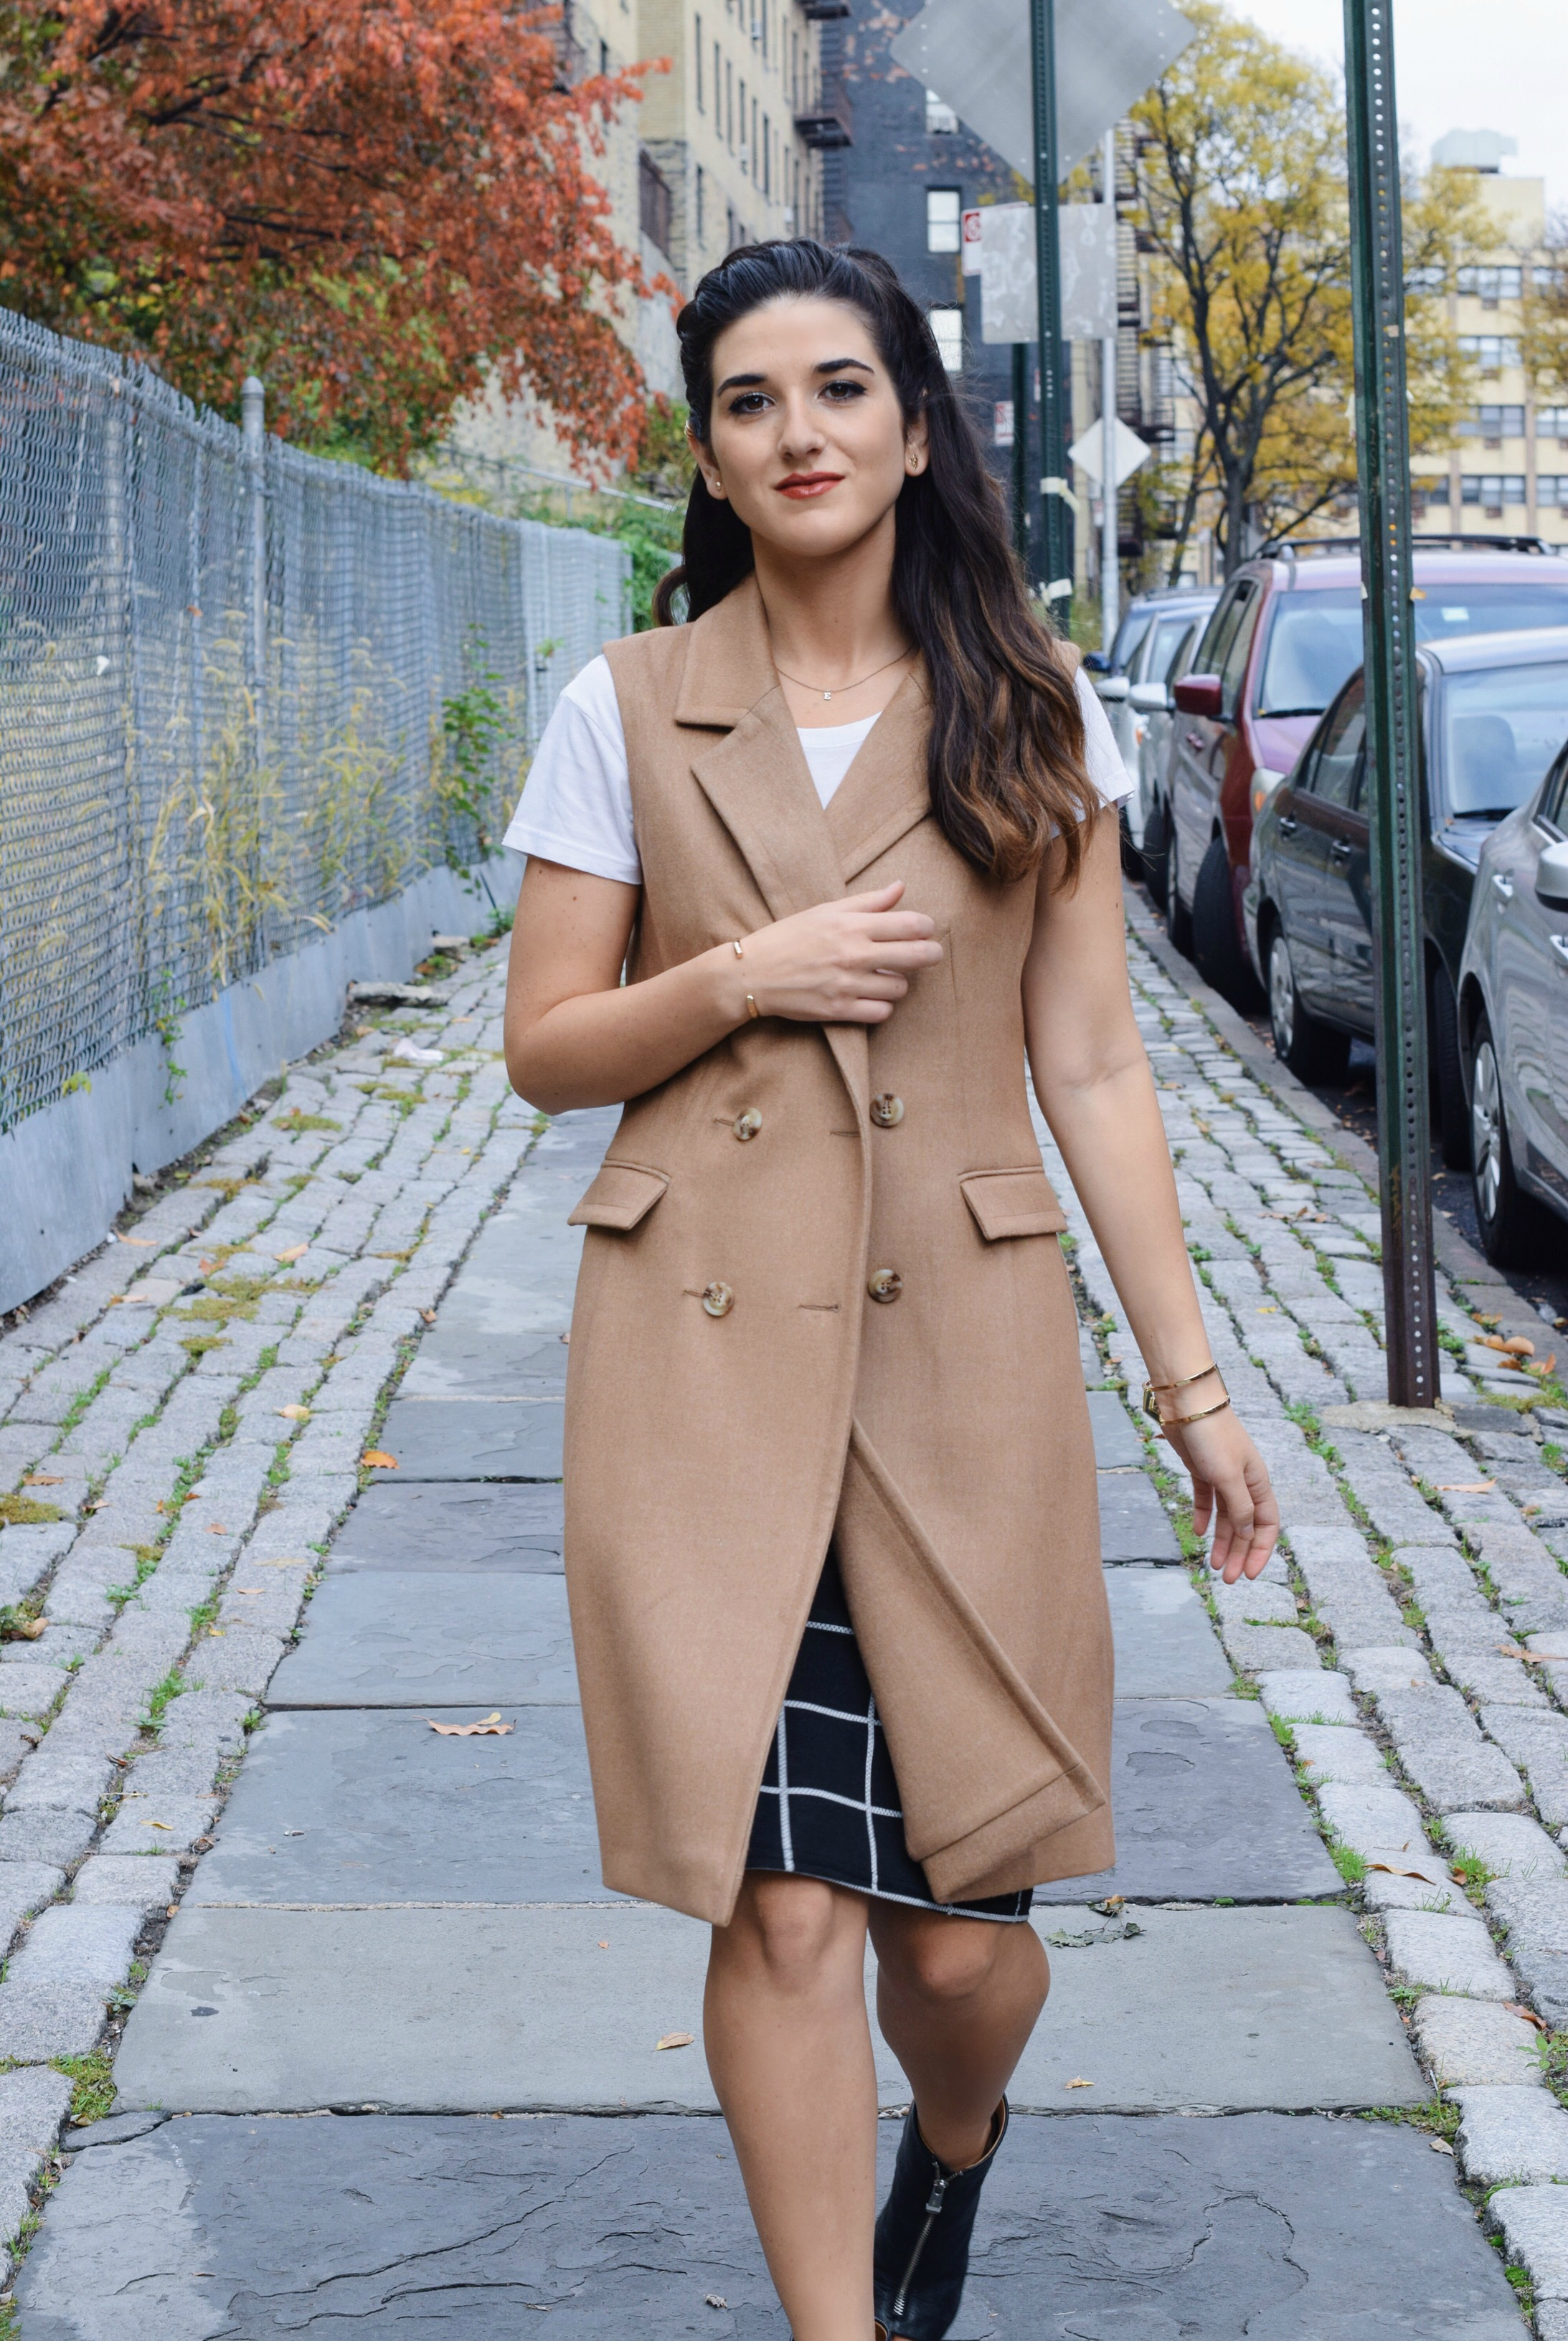 Sleeveless Coat Windowpane Skirt Oasis Louboutins & Love Fashion Blog Esther Santer NYC Street Style Blogger Vest Braid Outfit OOTD Inspo Inspiration White Tee Windowpane Skirt Gold Jewelry Cuff Bracelet Nordstrom Shoes Black Booties Trendy Women Girl.jpg